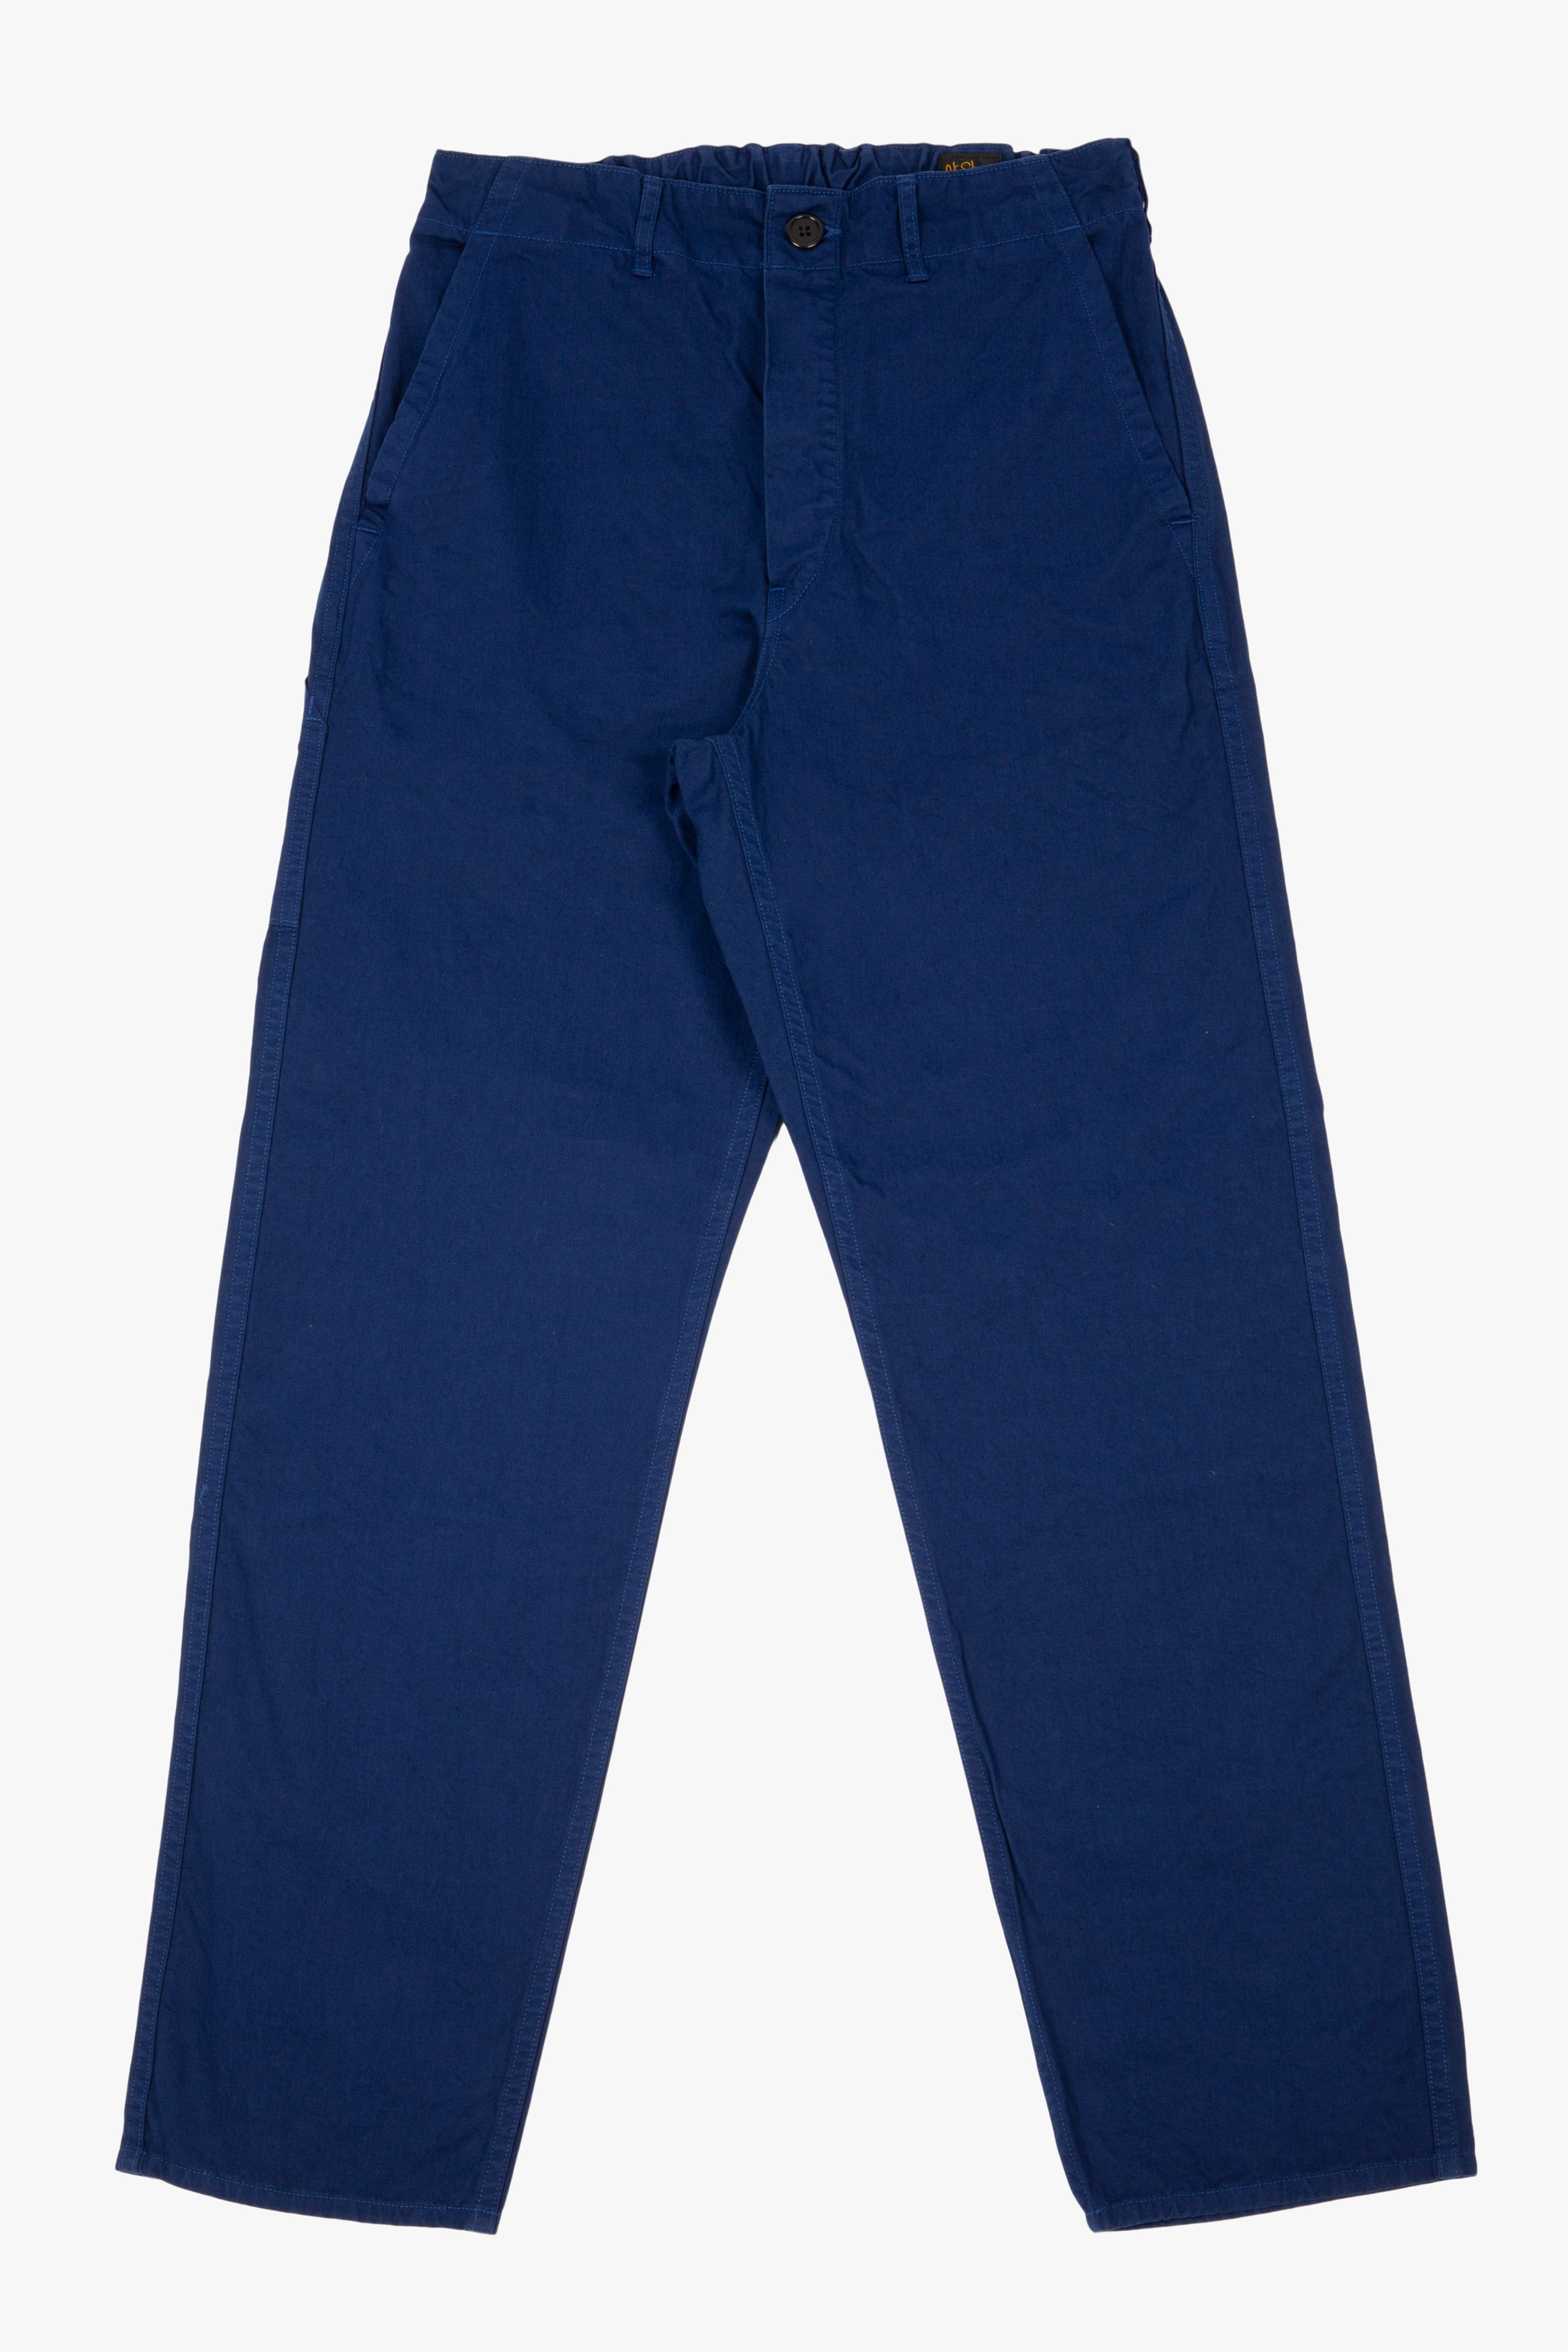 French Work Pants Blue